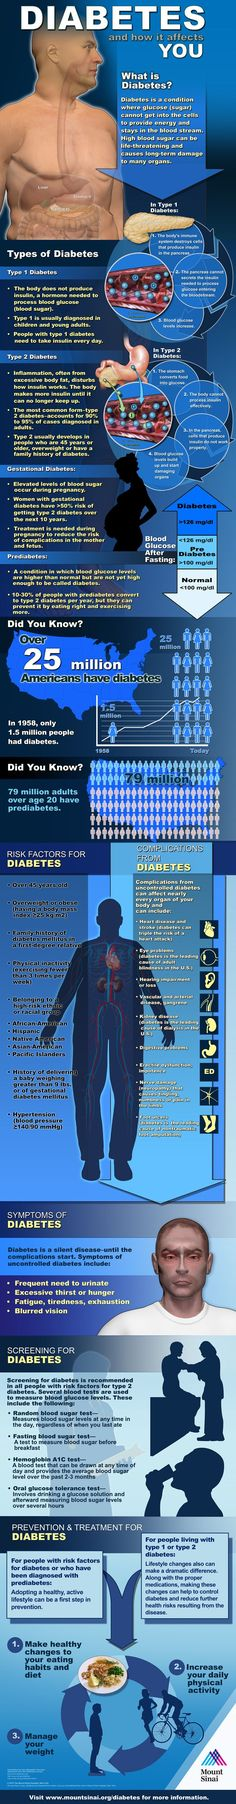 Type 2 Diabetes Infographic Health: What is diabetes? How does it affect you? Information graphic.Health: What is diabetes? How does it affect you? Information graphic. Diabetes Facts, Diabetes Awareness, Type 1 Diabetes, Diabetes Care, Diabetes Diet, Health And Wellness, Health Tips, Nursing, Health Education